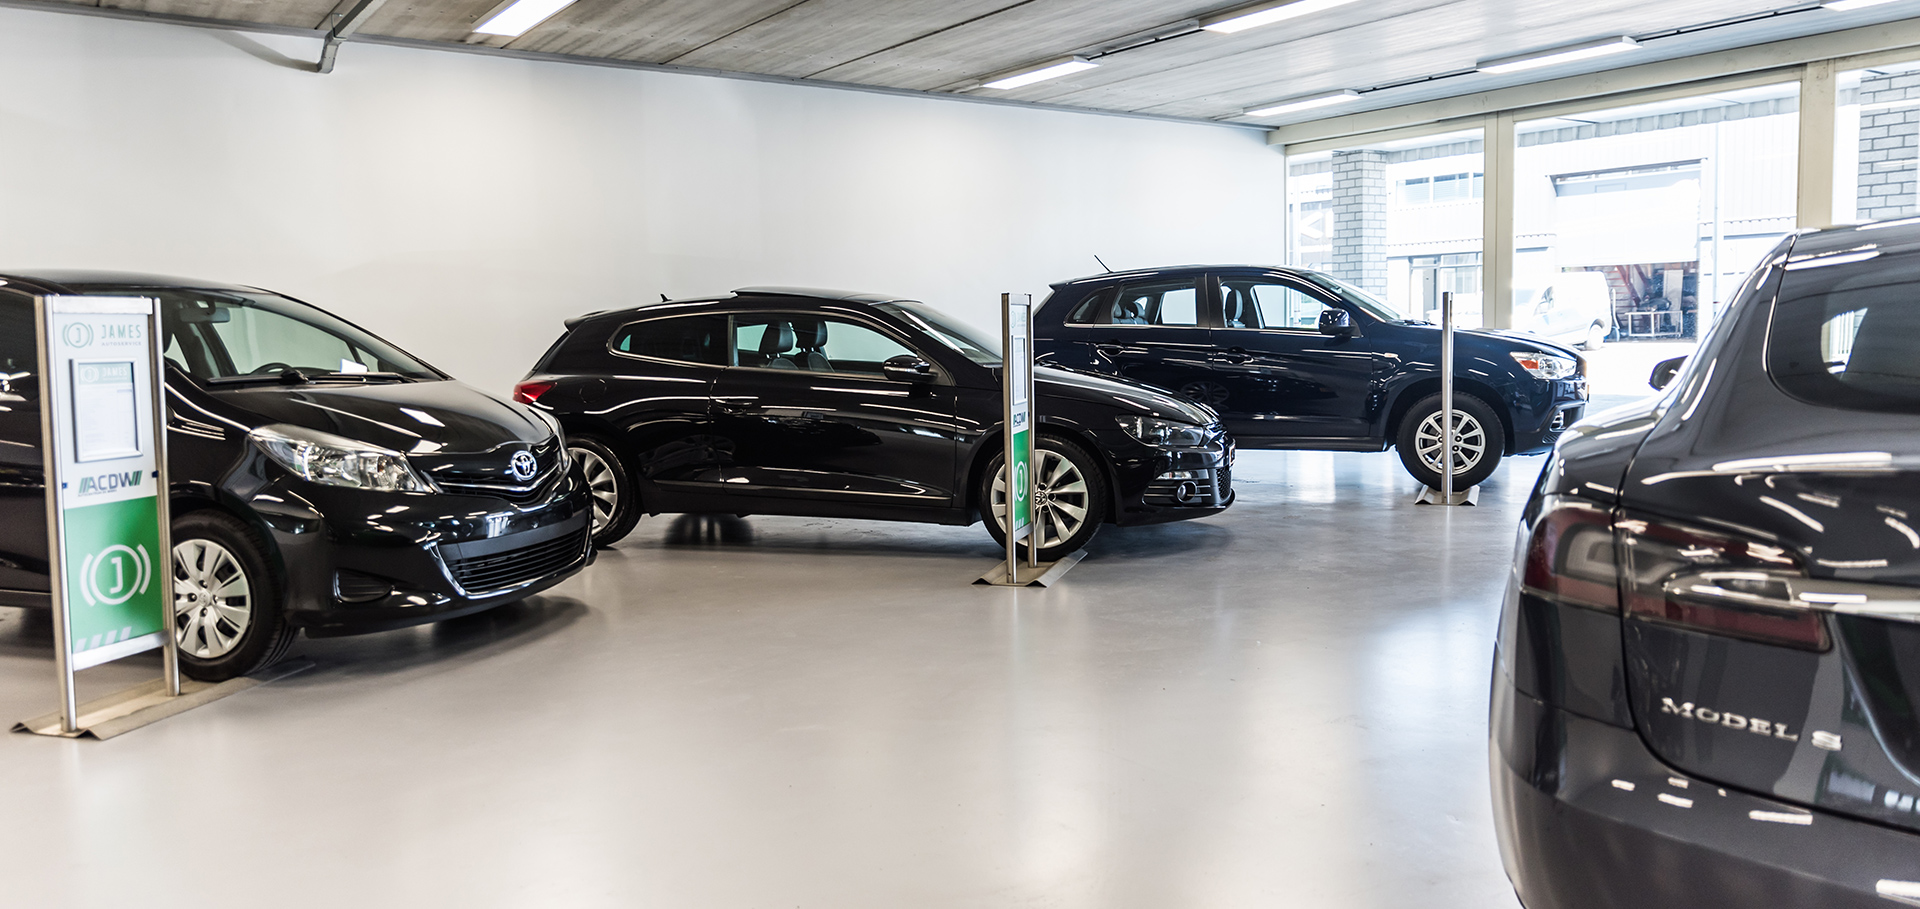 Private Lease bij James Autoservice de Wiers in Nieuwegein